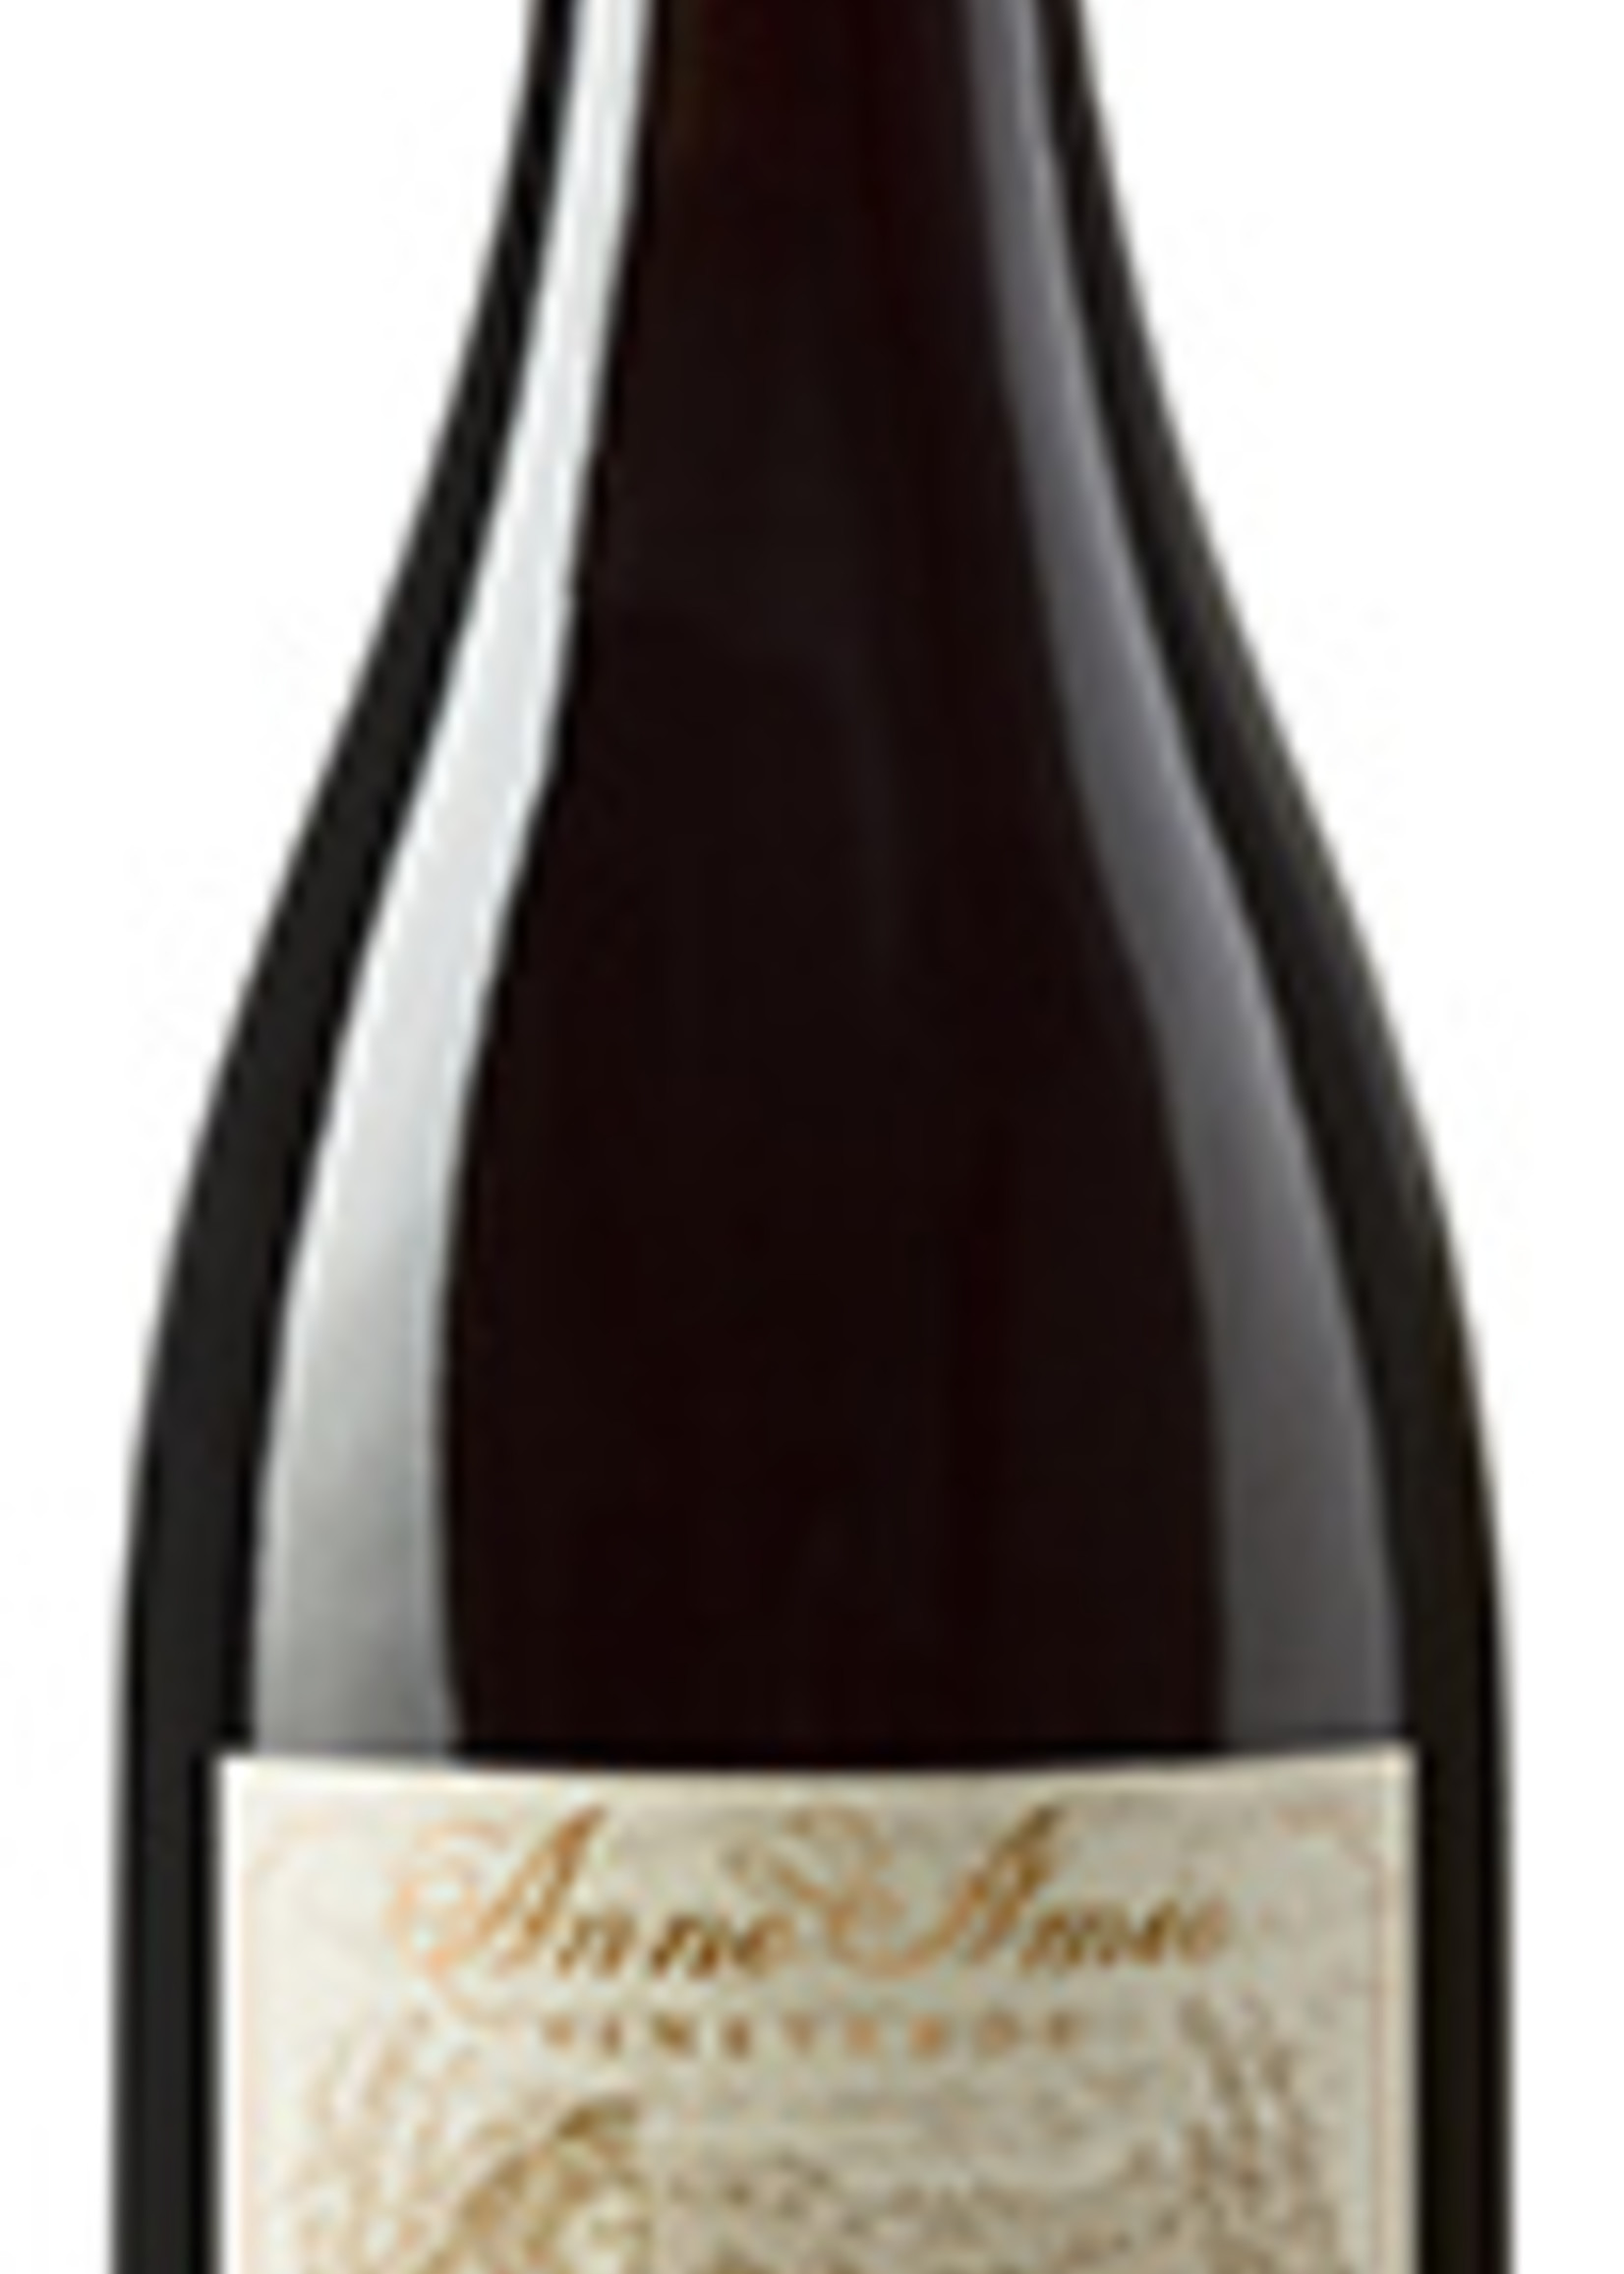 Anne Amie Pinot Noir Winemaker Selection